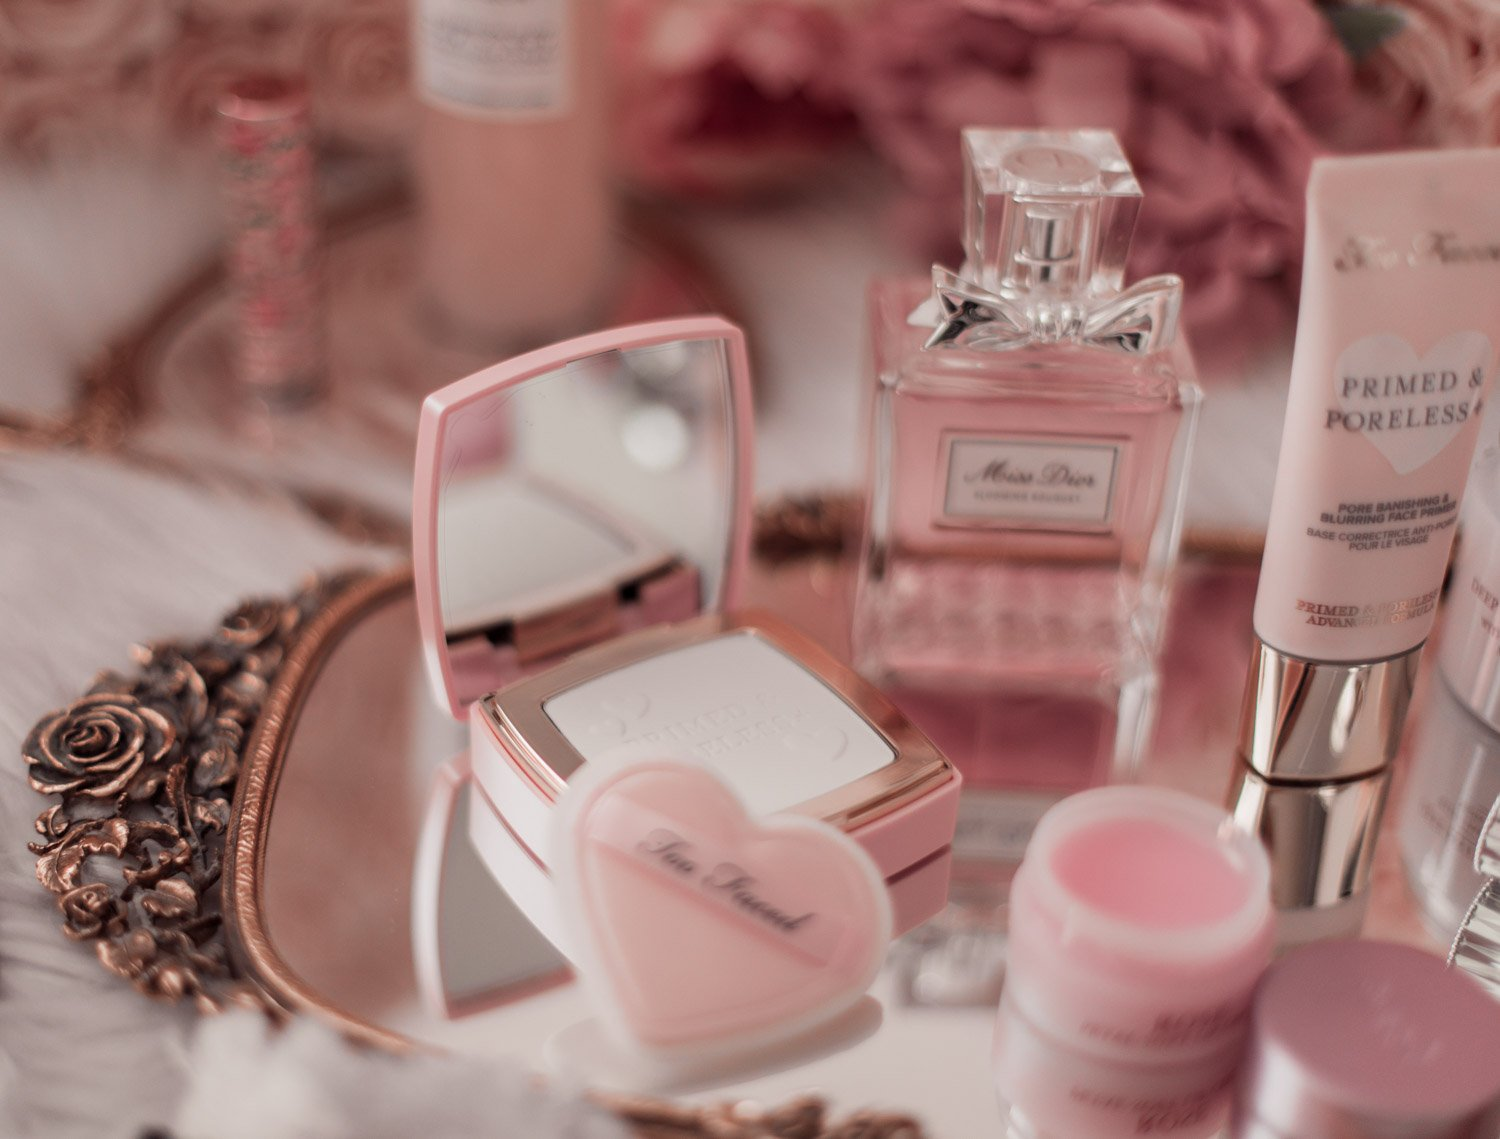 Elizabeth Hugen of Lizzie in Lace shares her must-have pink beauty products including the too faced primed and poreless powder